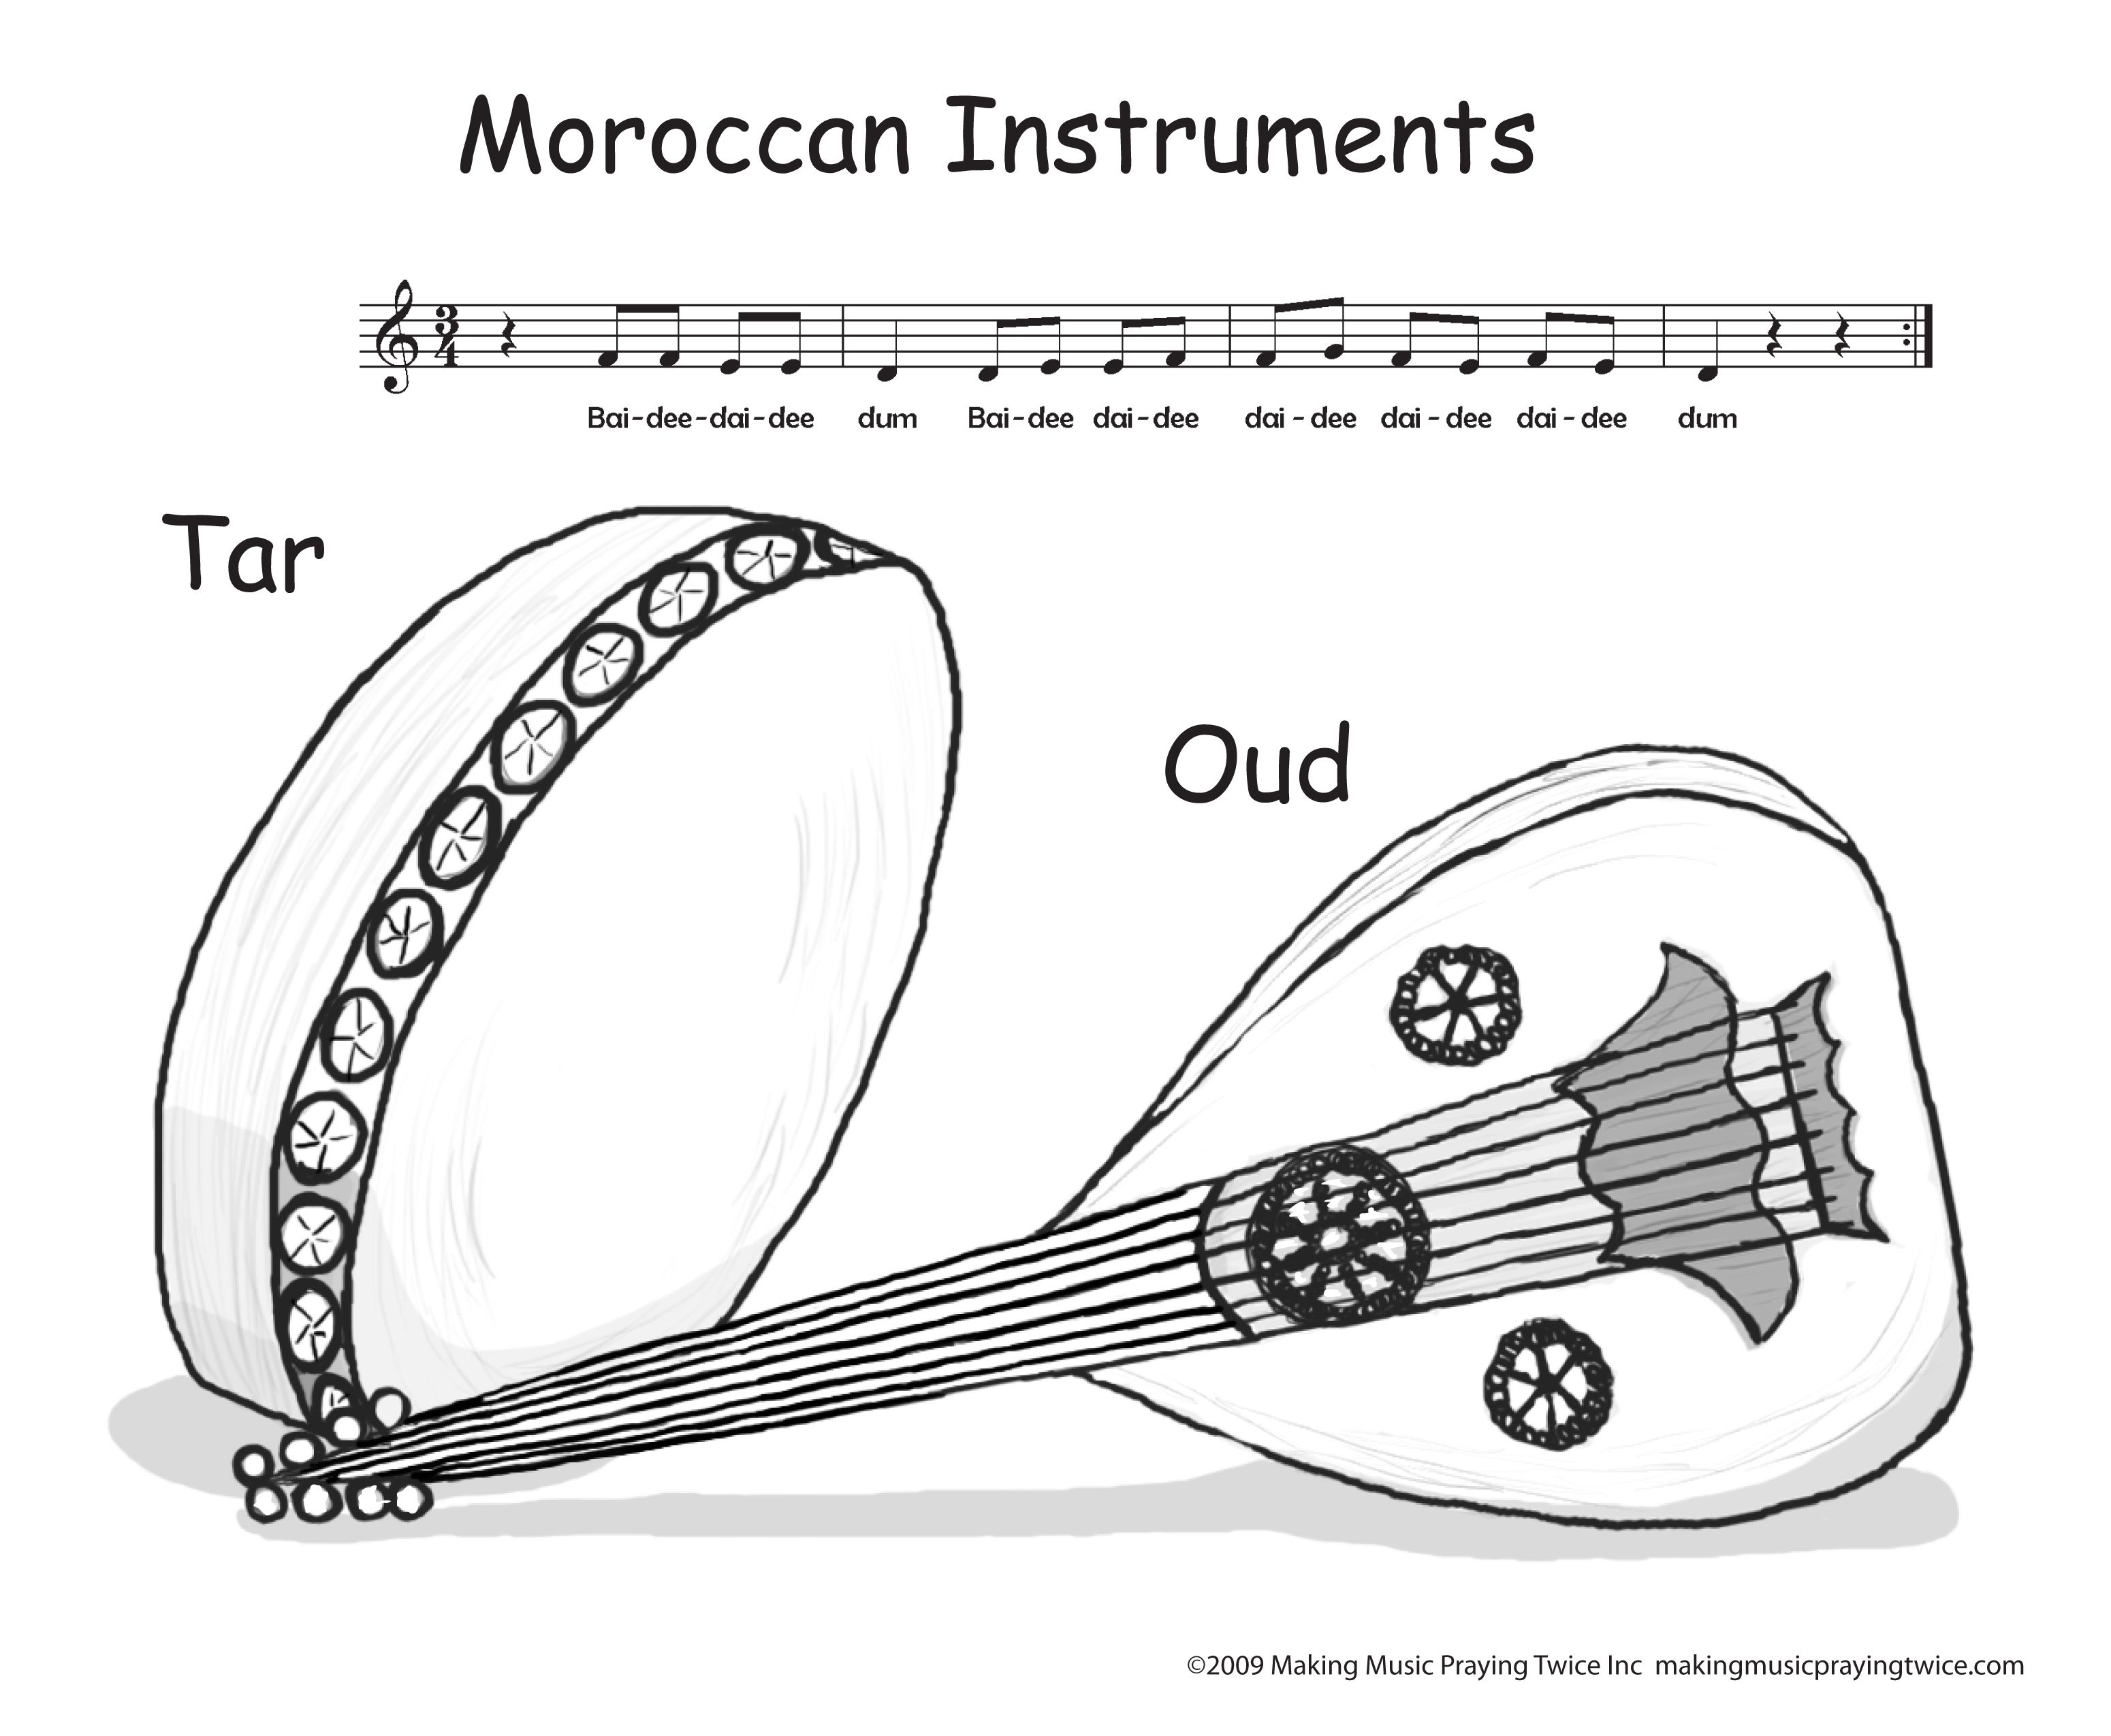 Mmpt Pictures S3azonaws Mmpt Coloring Pages Moroccan 20instruments